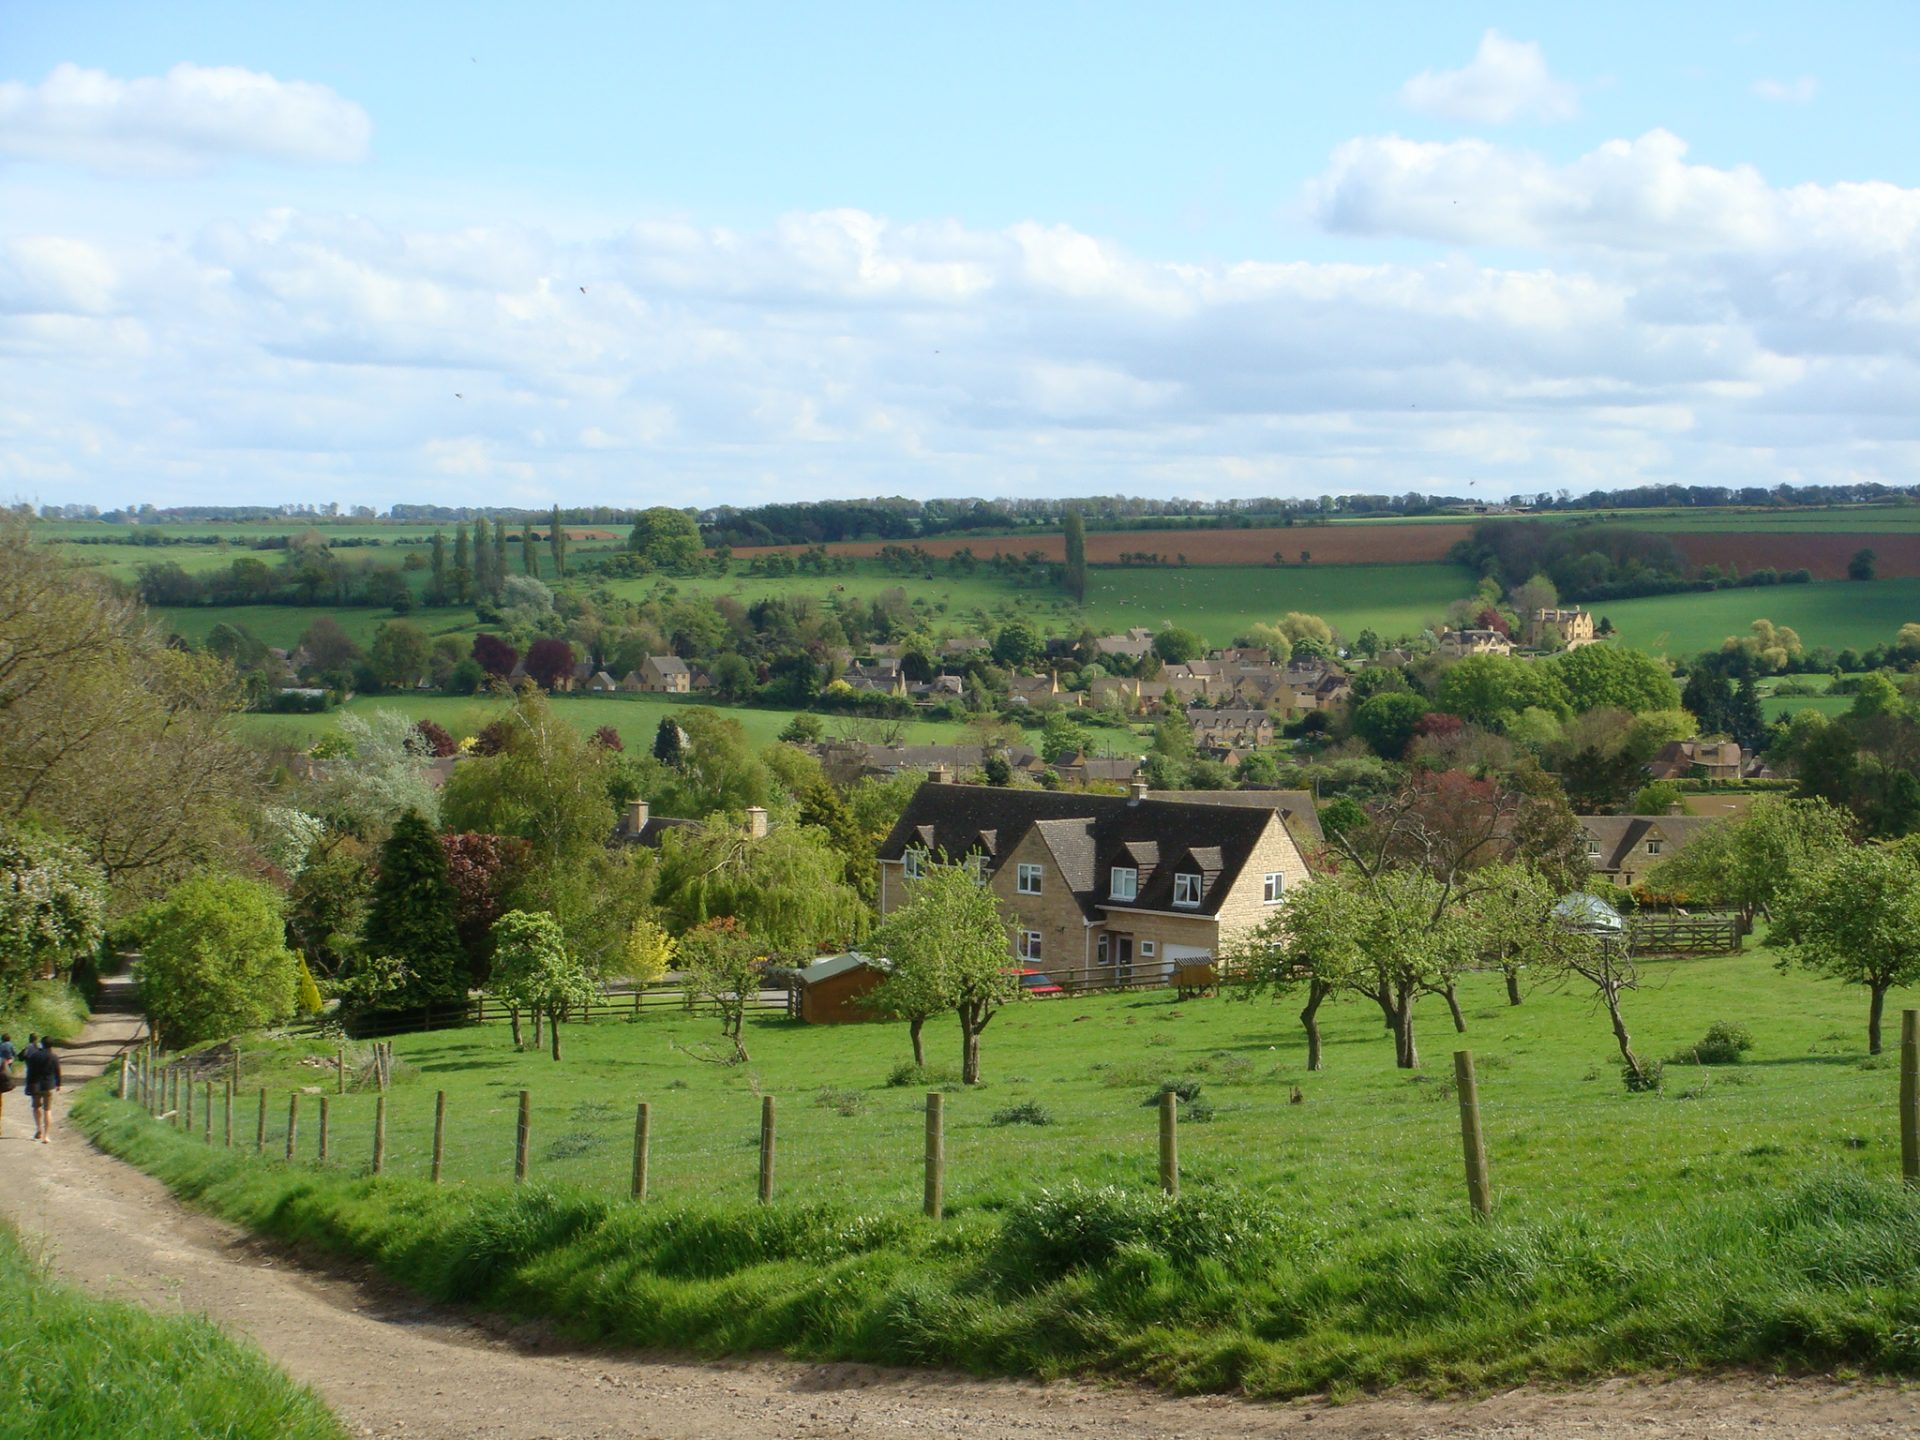 Chipping Campden as seen from Dove Hill - site of the 'shin-kicking Olimpiks'